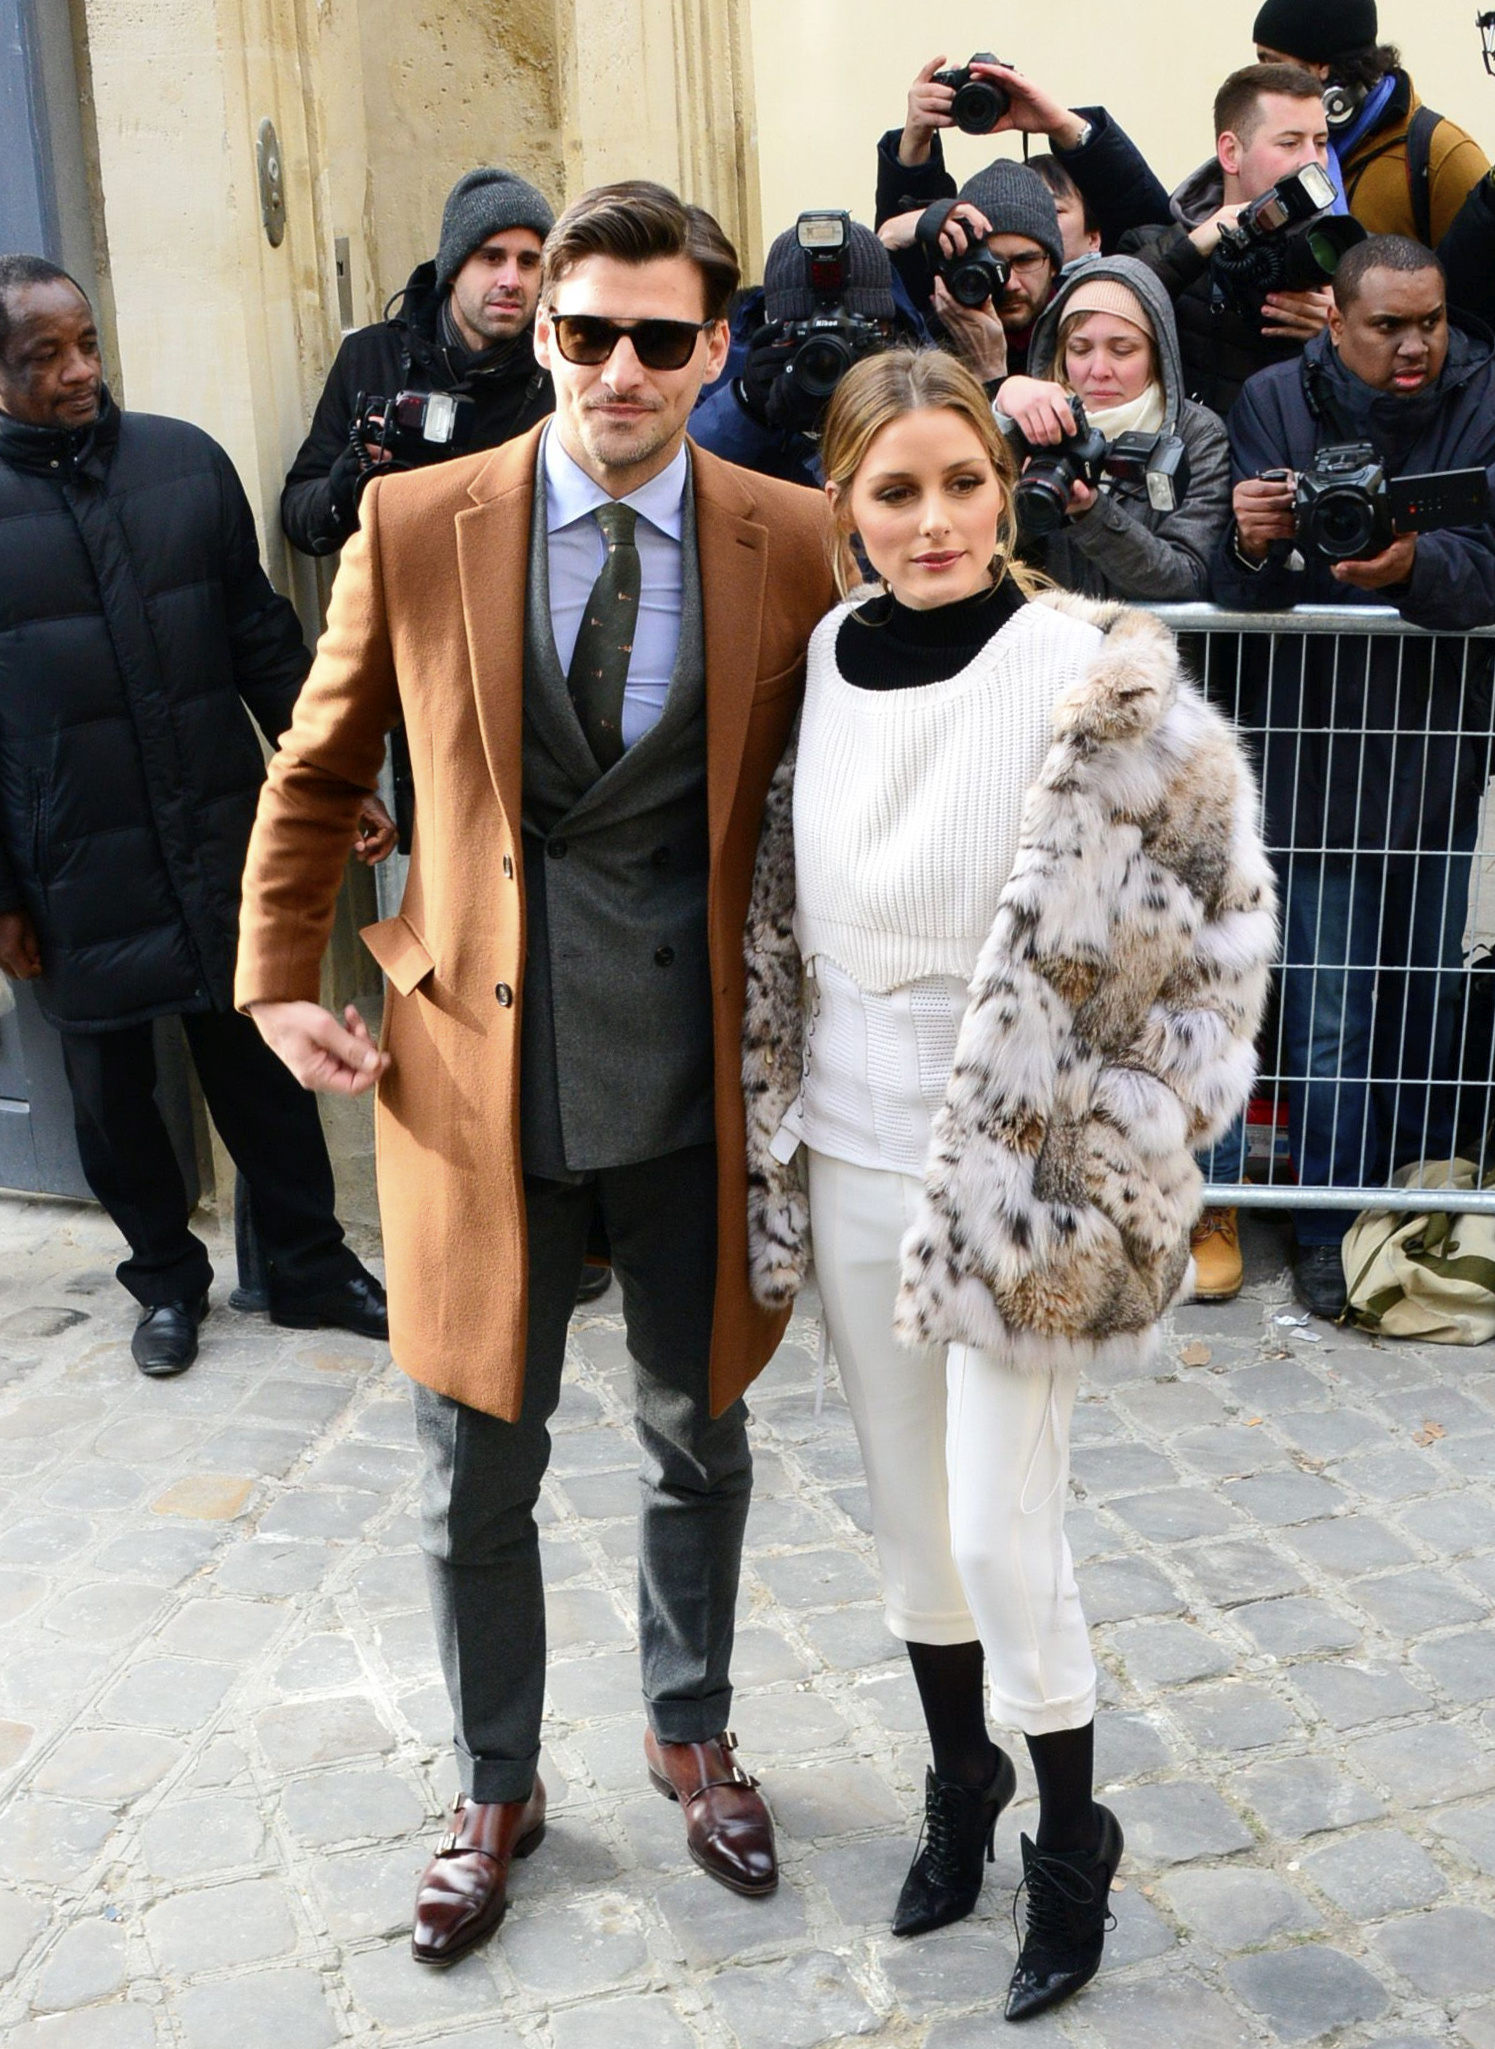 Olivia Palermo and Johannes Huebl attending the Christian Dior Haute Couture Spring Summer 2017 fashion show as part of Paris Fashion Week. January 23, 2017 X17online.com USA ONLY